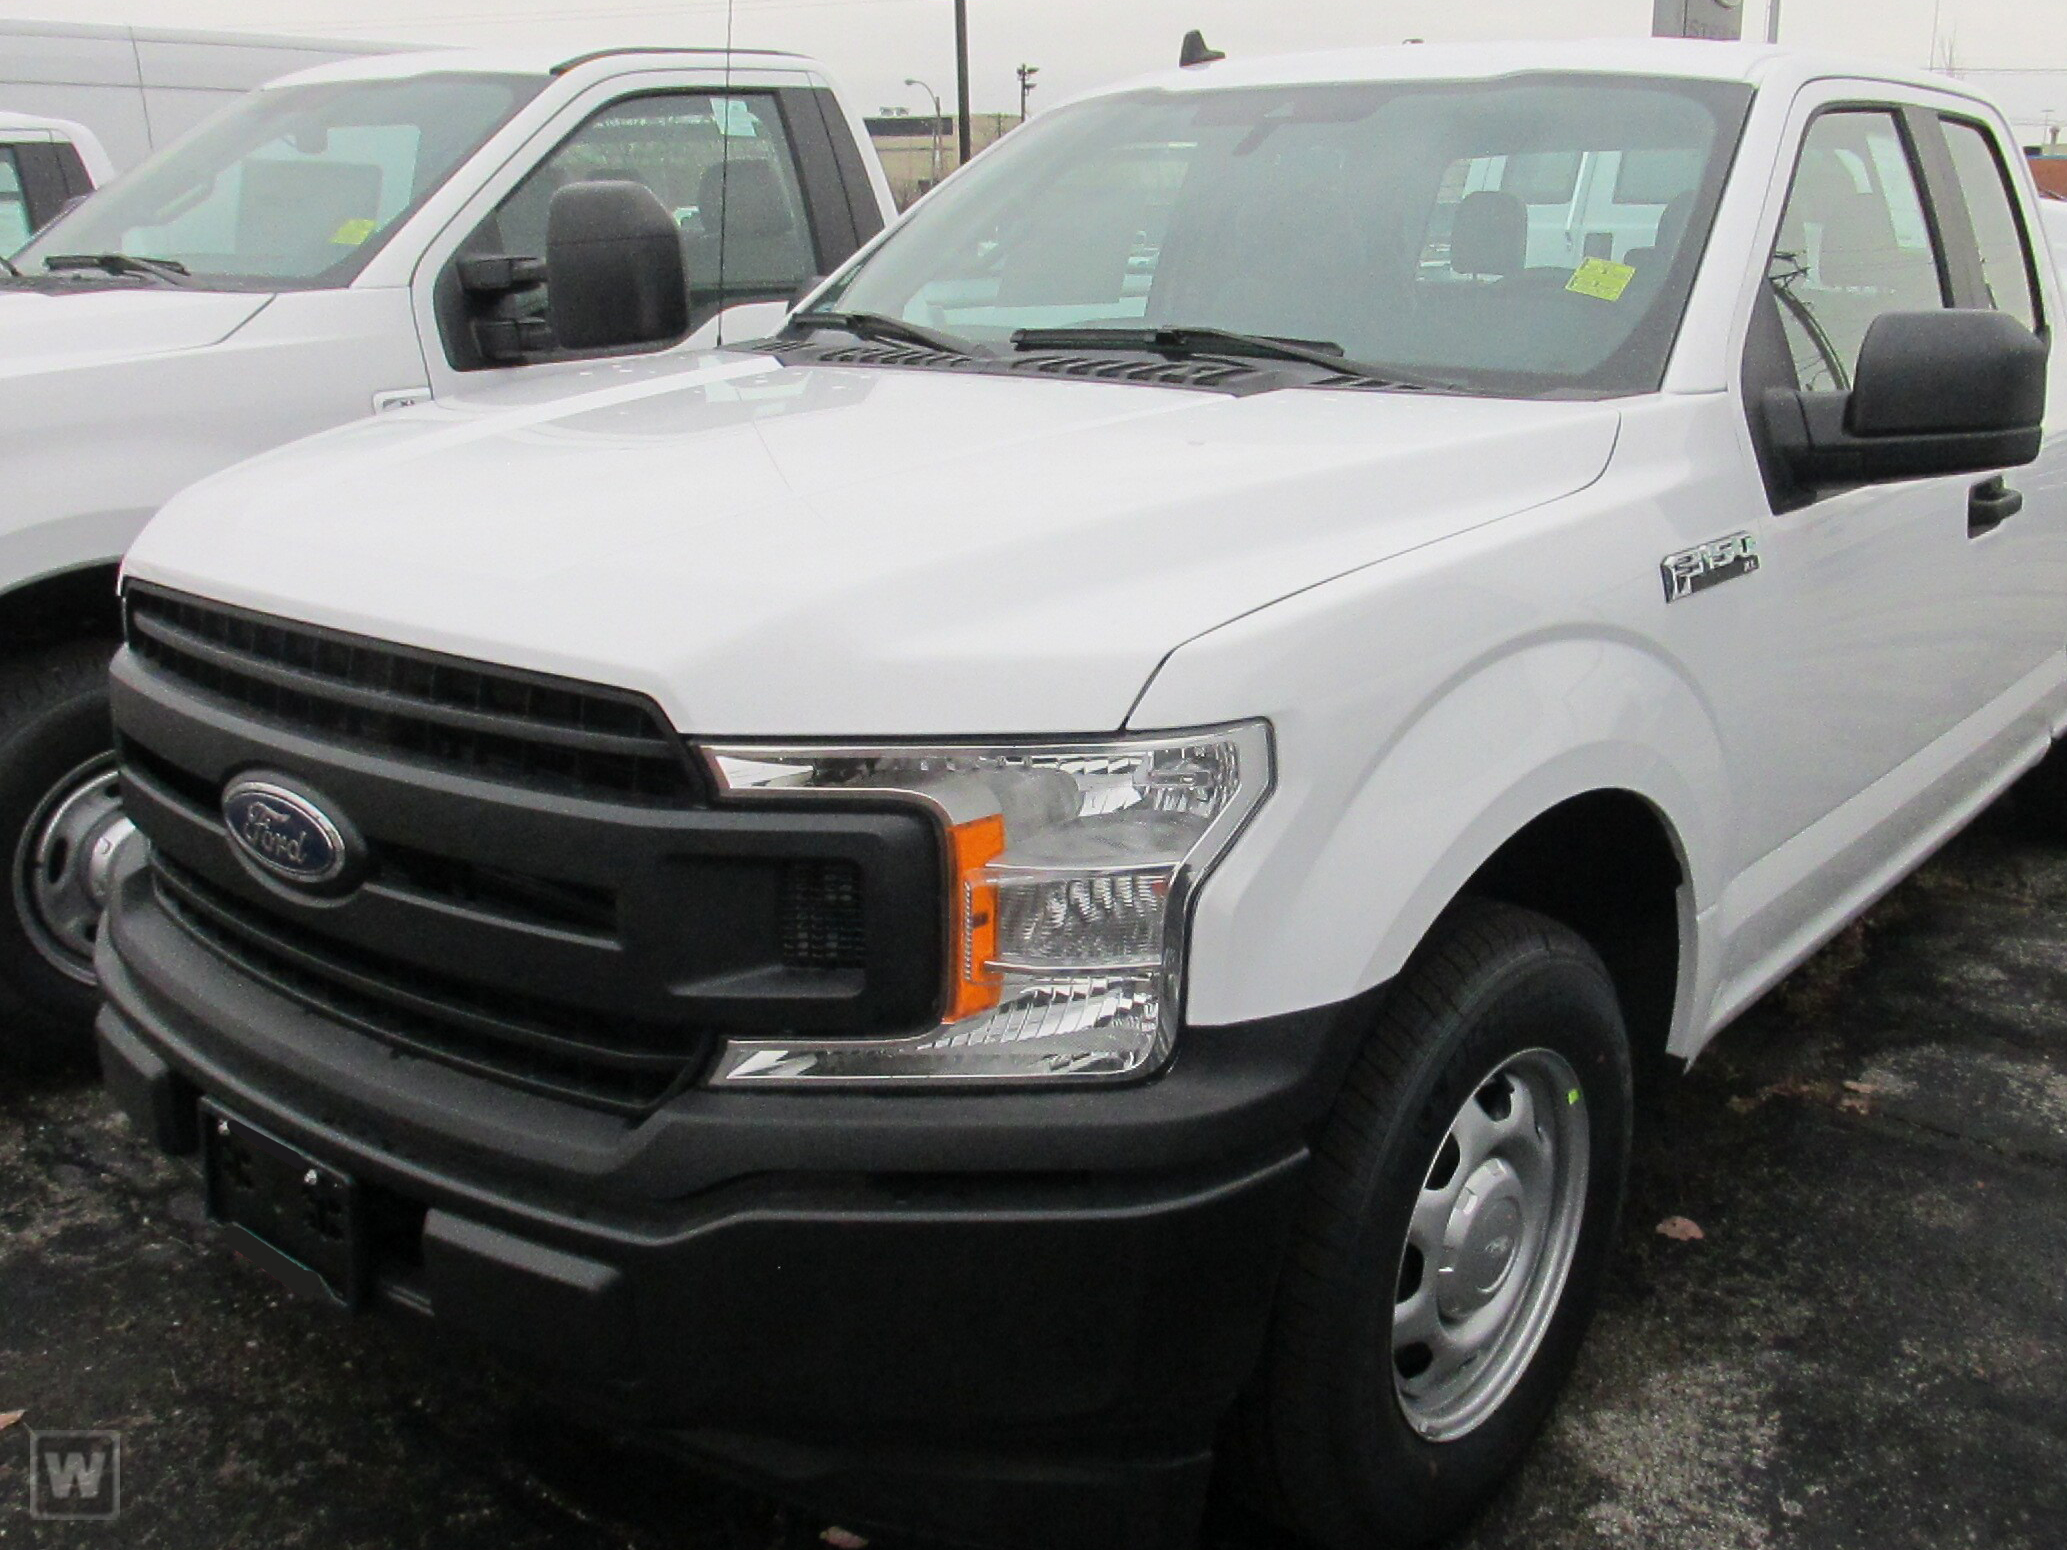 2020 F-150 Super Cab 4x4, Pickup #2105 - photo 1